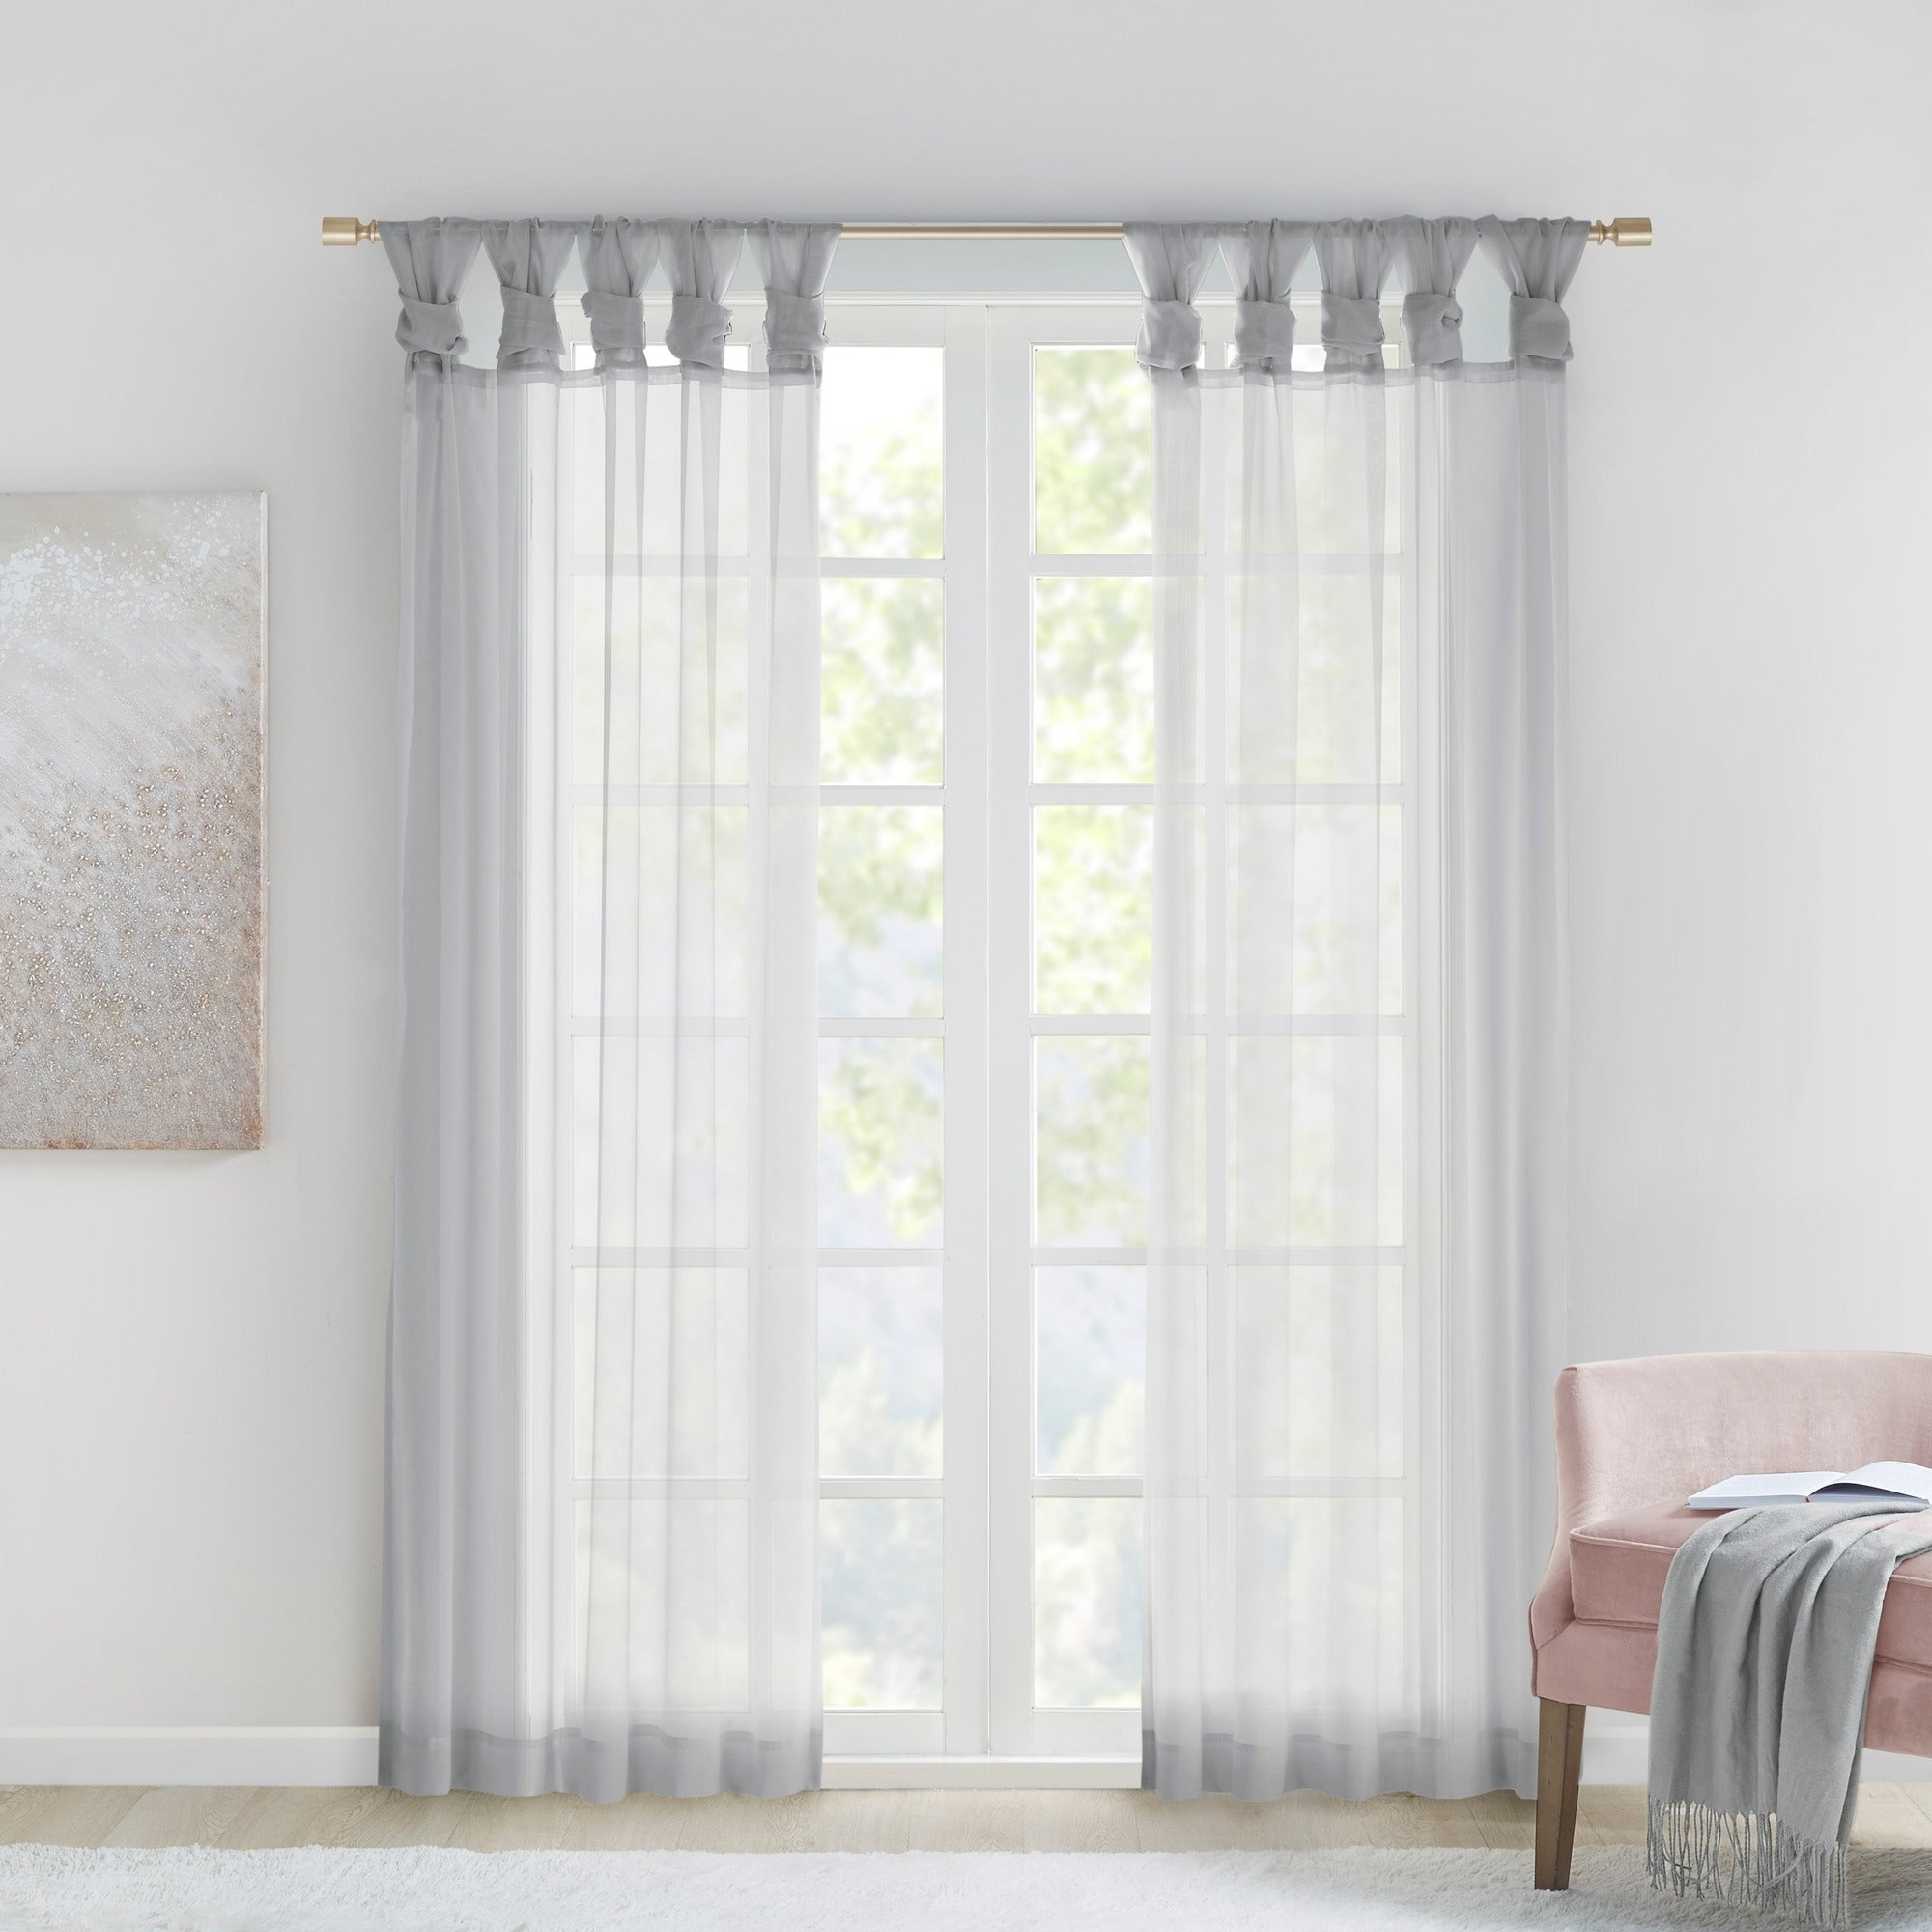 Most Current Elowen White Twist Tab Voile Sheer Curtain Panel Pairs With Madison Park Elowen White Twist Tab Voile Sheer Curtain Panel Pair (Gallery 11 of 20)